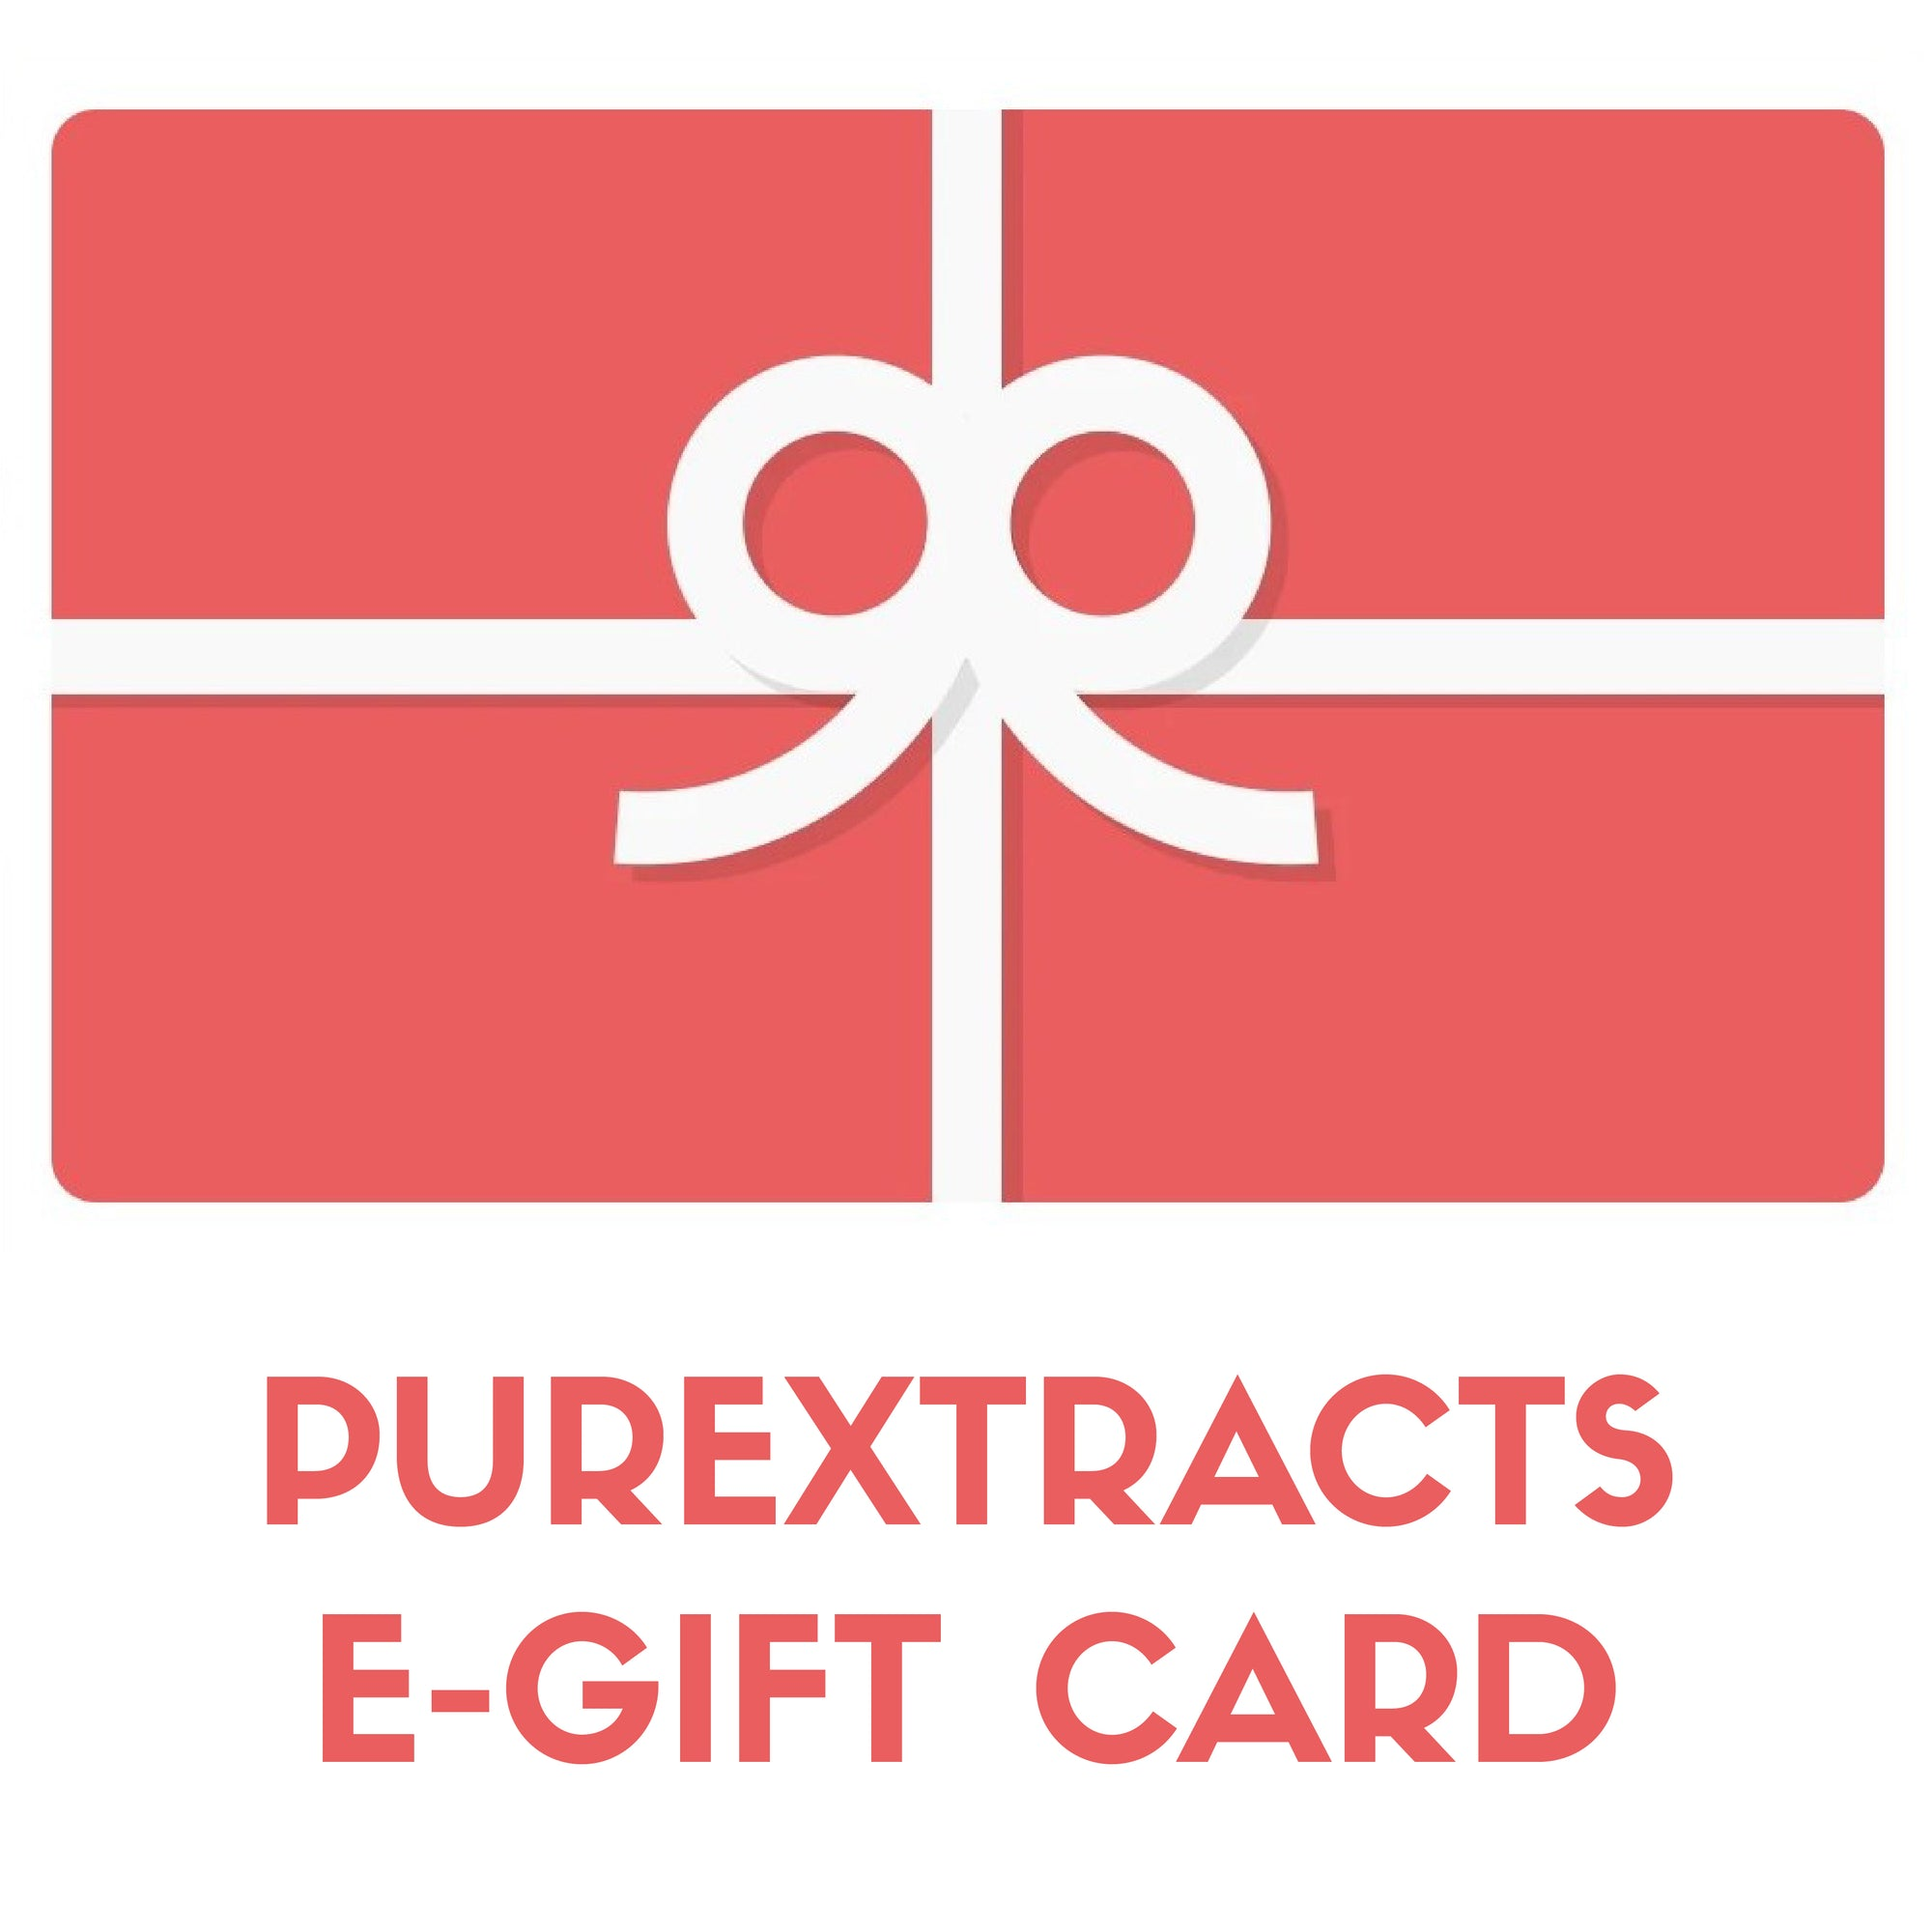 Purextracts e-gift card